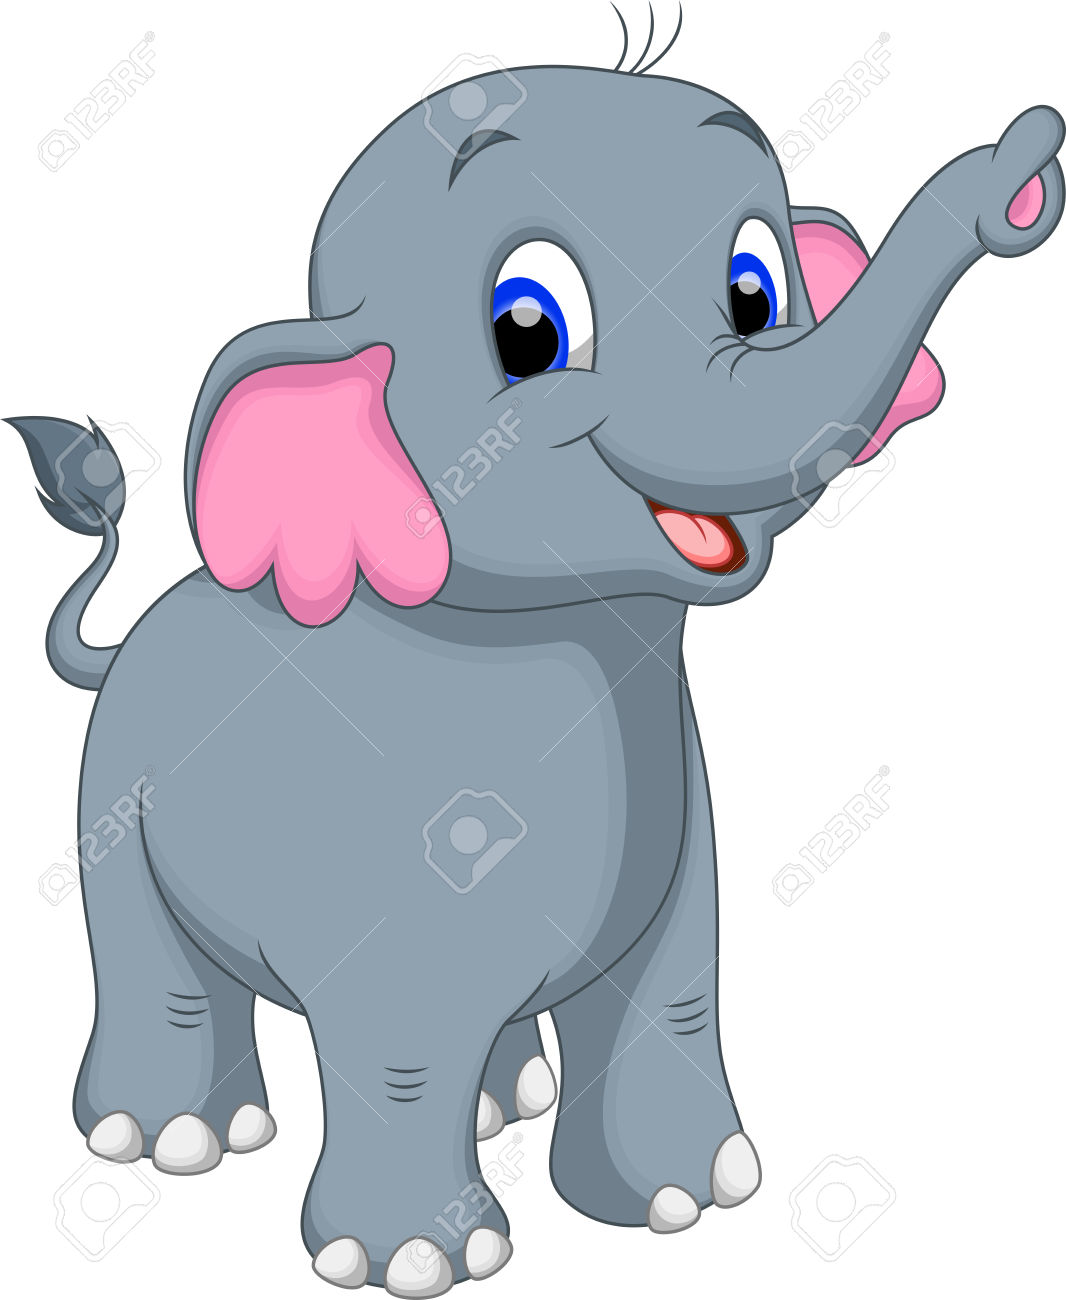 Cute Elephant Clipart   Free download on ClipArtMag